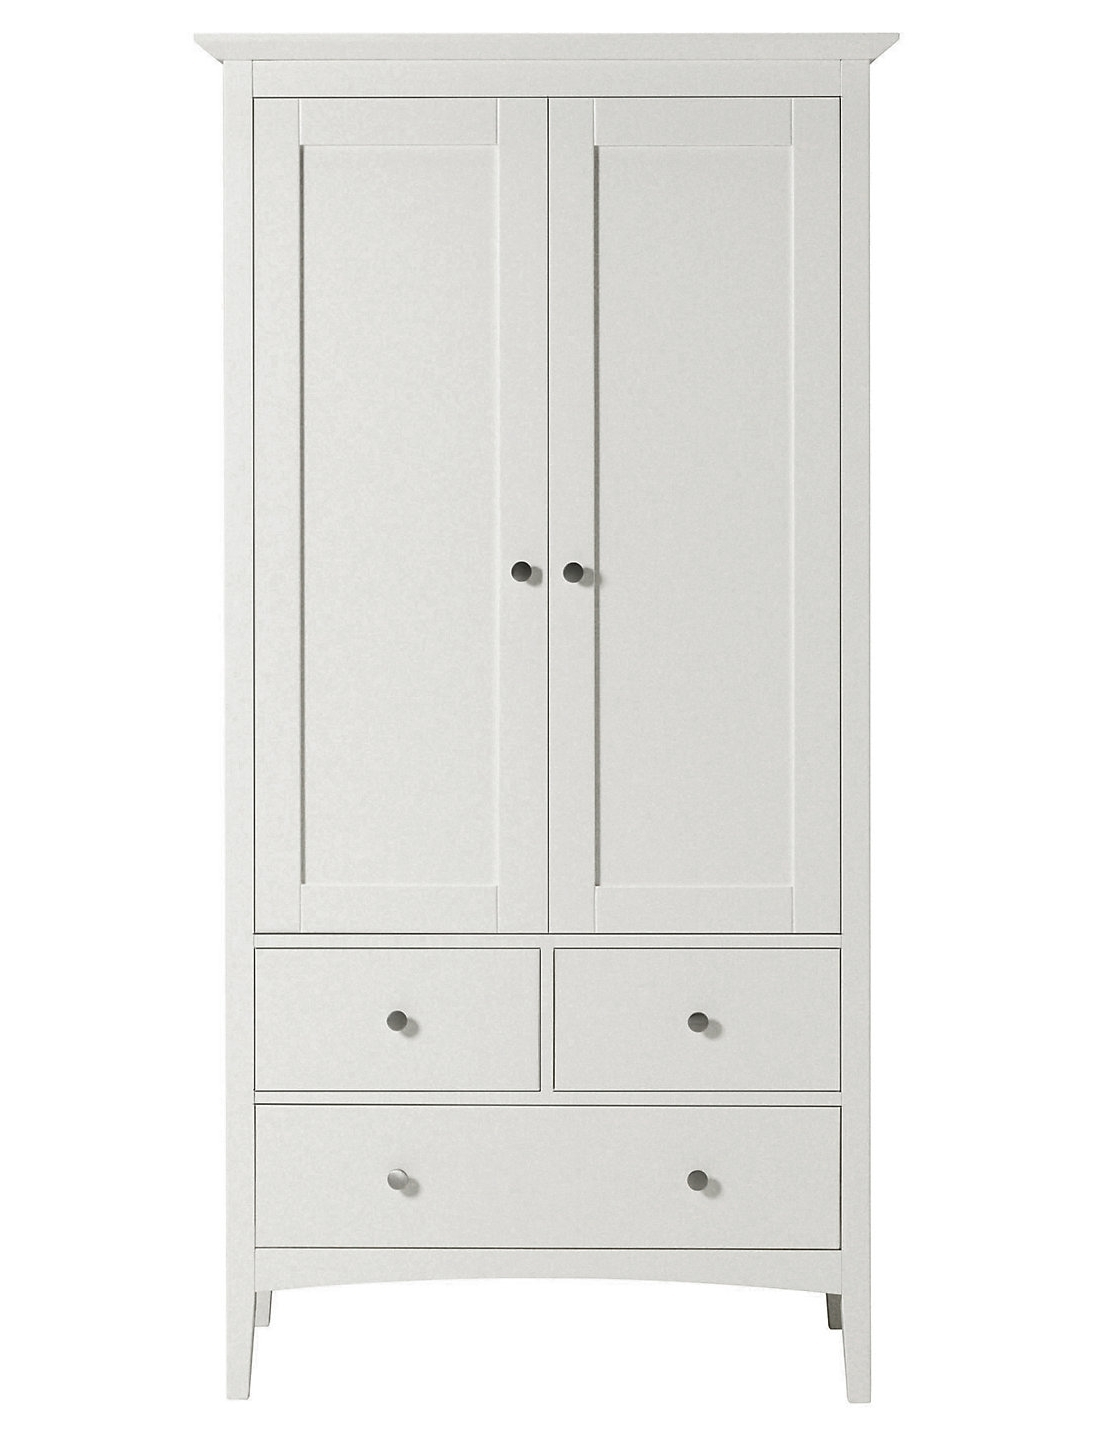 Ready Made Wardrobes Nz With Sliding Doors Brisbane Price In Many With Regard To Trendy Tall White Wardrobes (View 8 of 15)